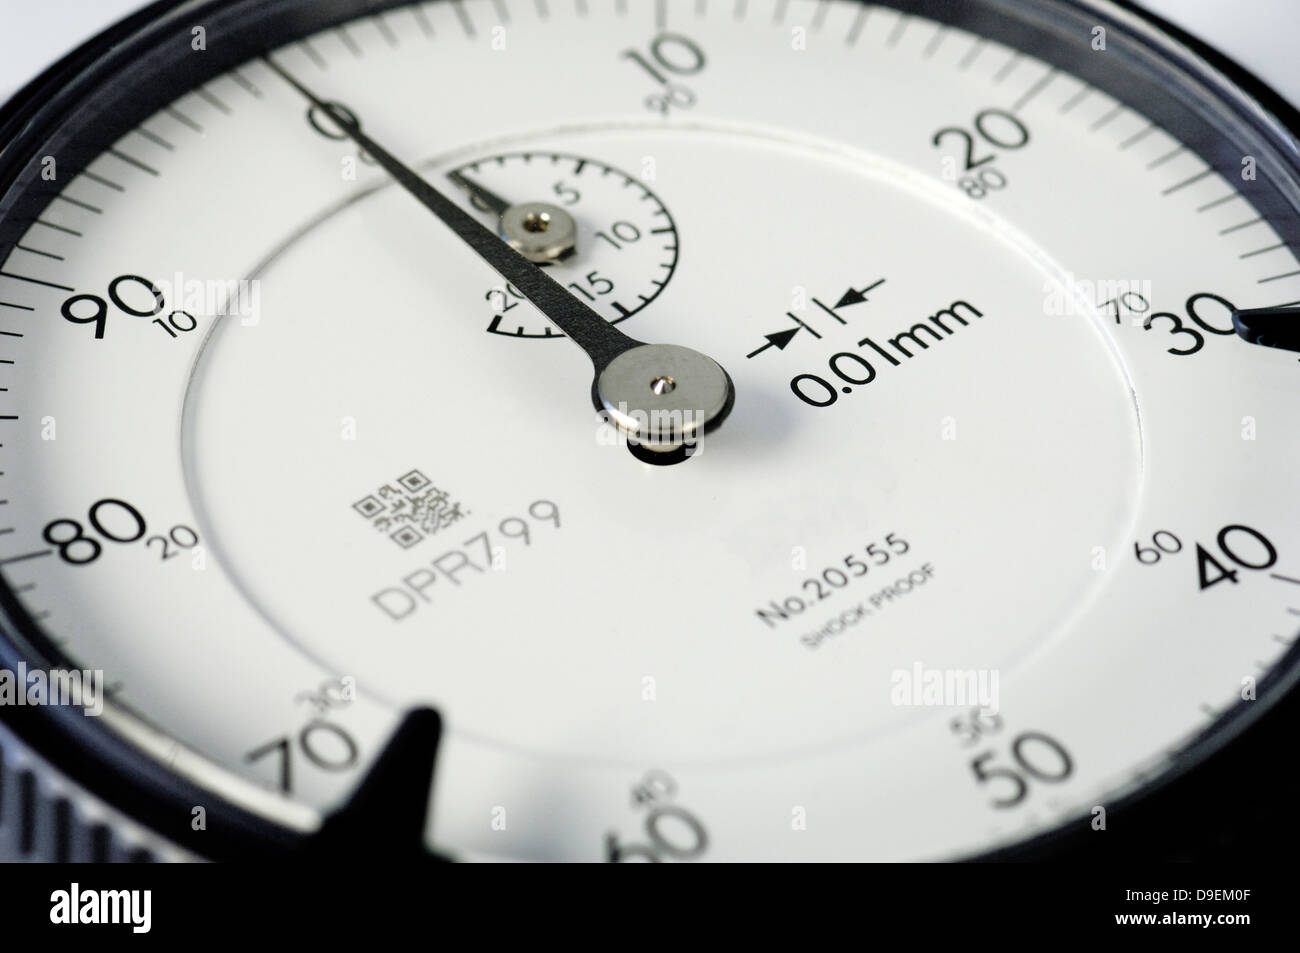 Accuracy announcement register measure out check check Control Craft dial. gauge Digit measure exact exactly precisely - Stock Image